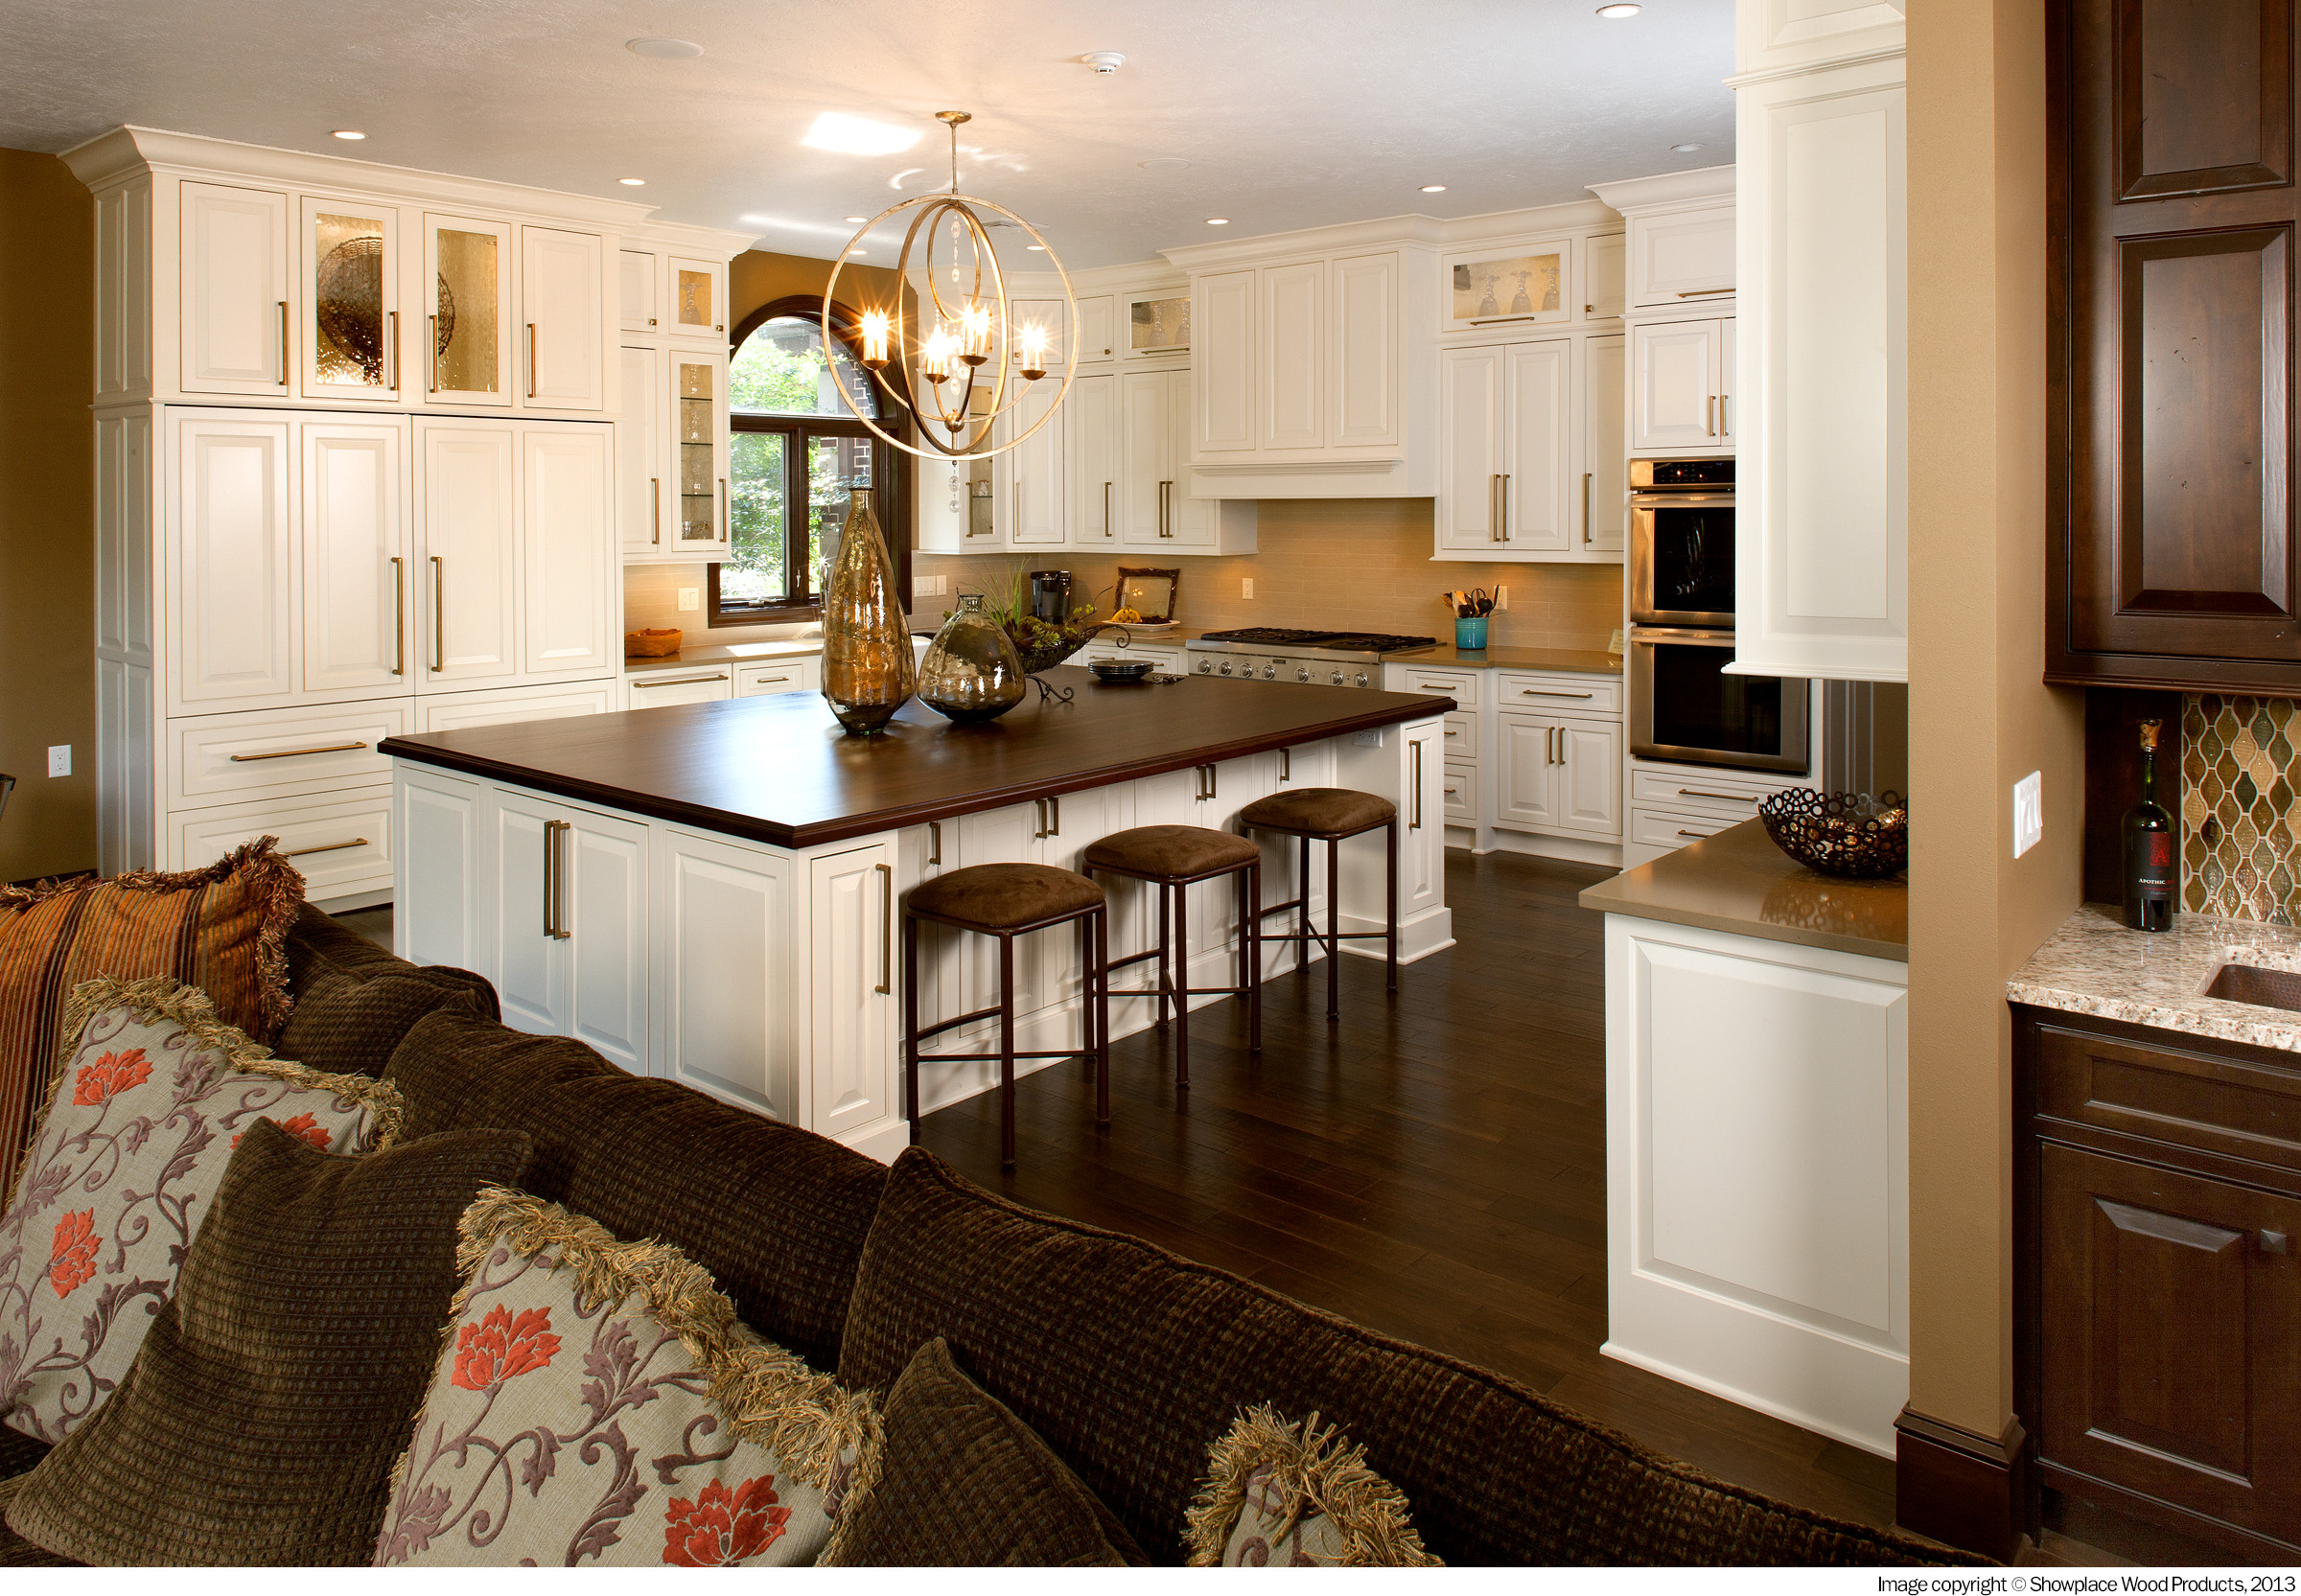 Benefits Of Shopping Kitchen Cabinetry Online